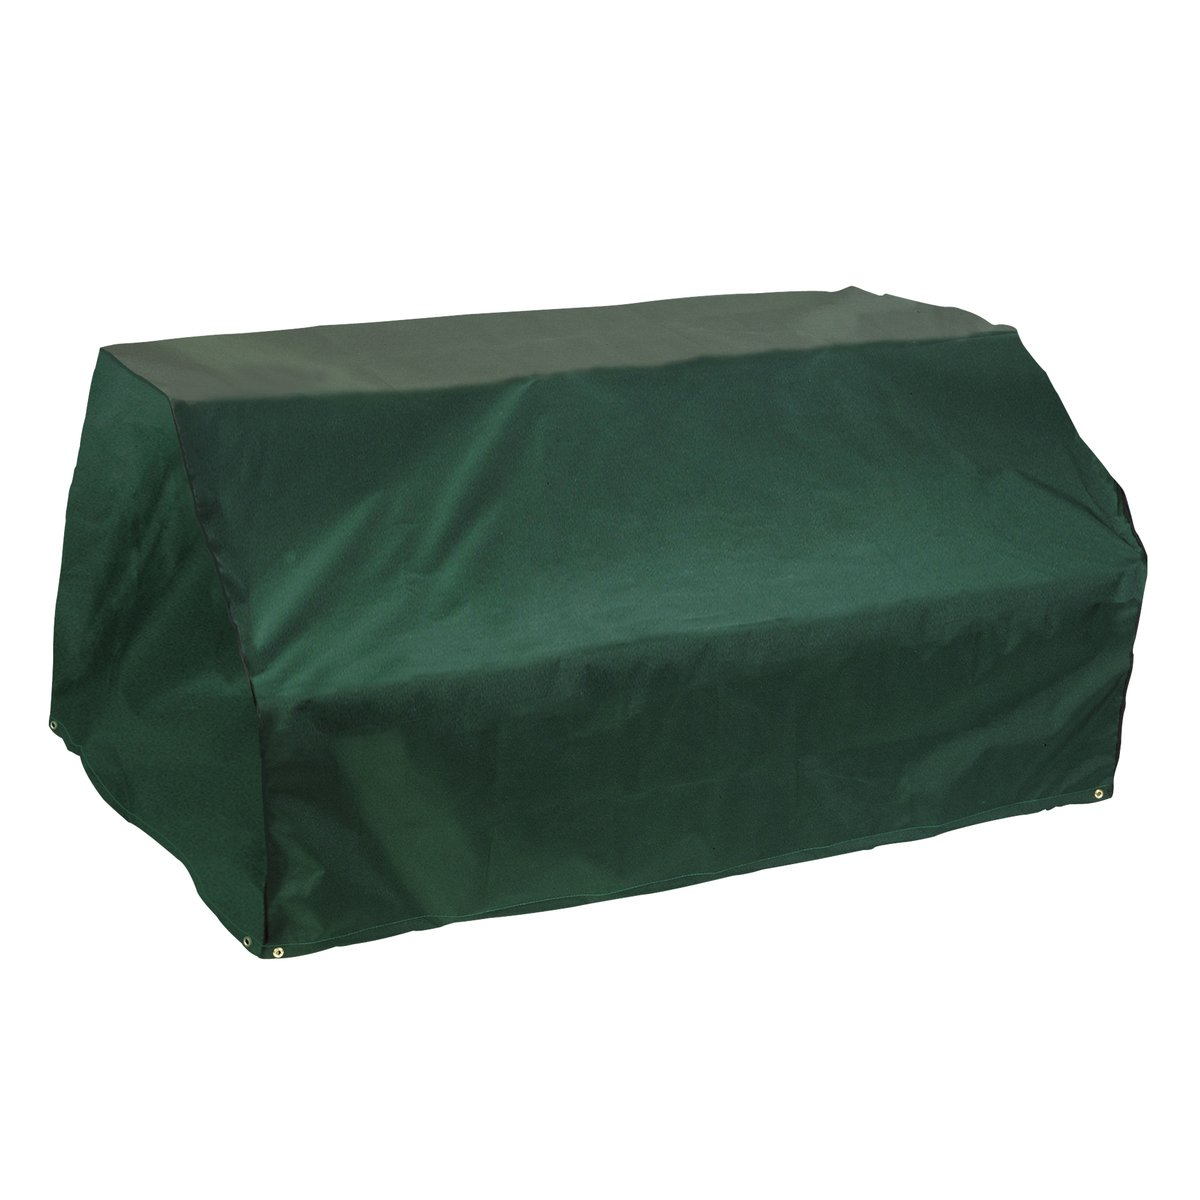 Bosmere C625 6 Seat Picnic Table Cover  Amazon co uk  Garden   Outdoors. Bosmere C625 6 Seat Picnic Table Cover  Amazon co uk  Garden